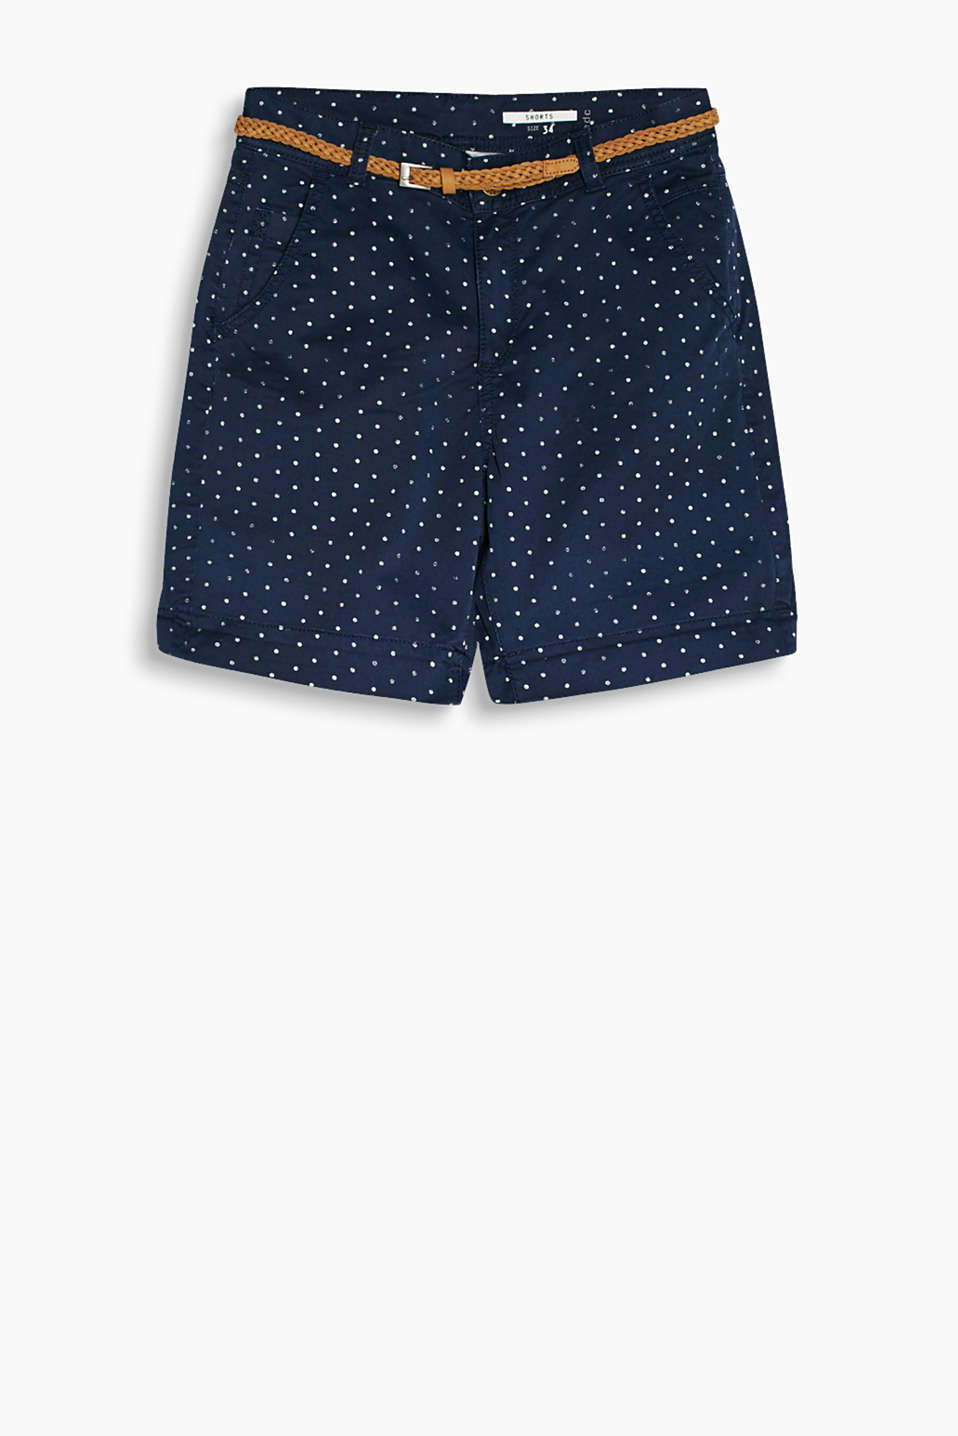 edc - Polka dot stretch shorts